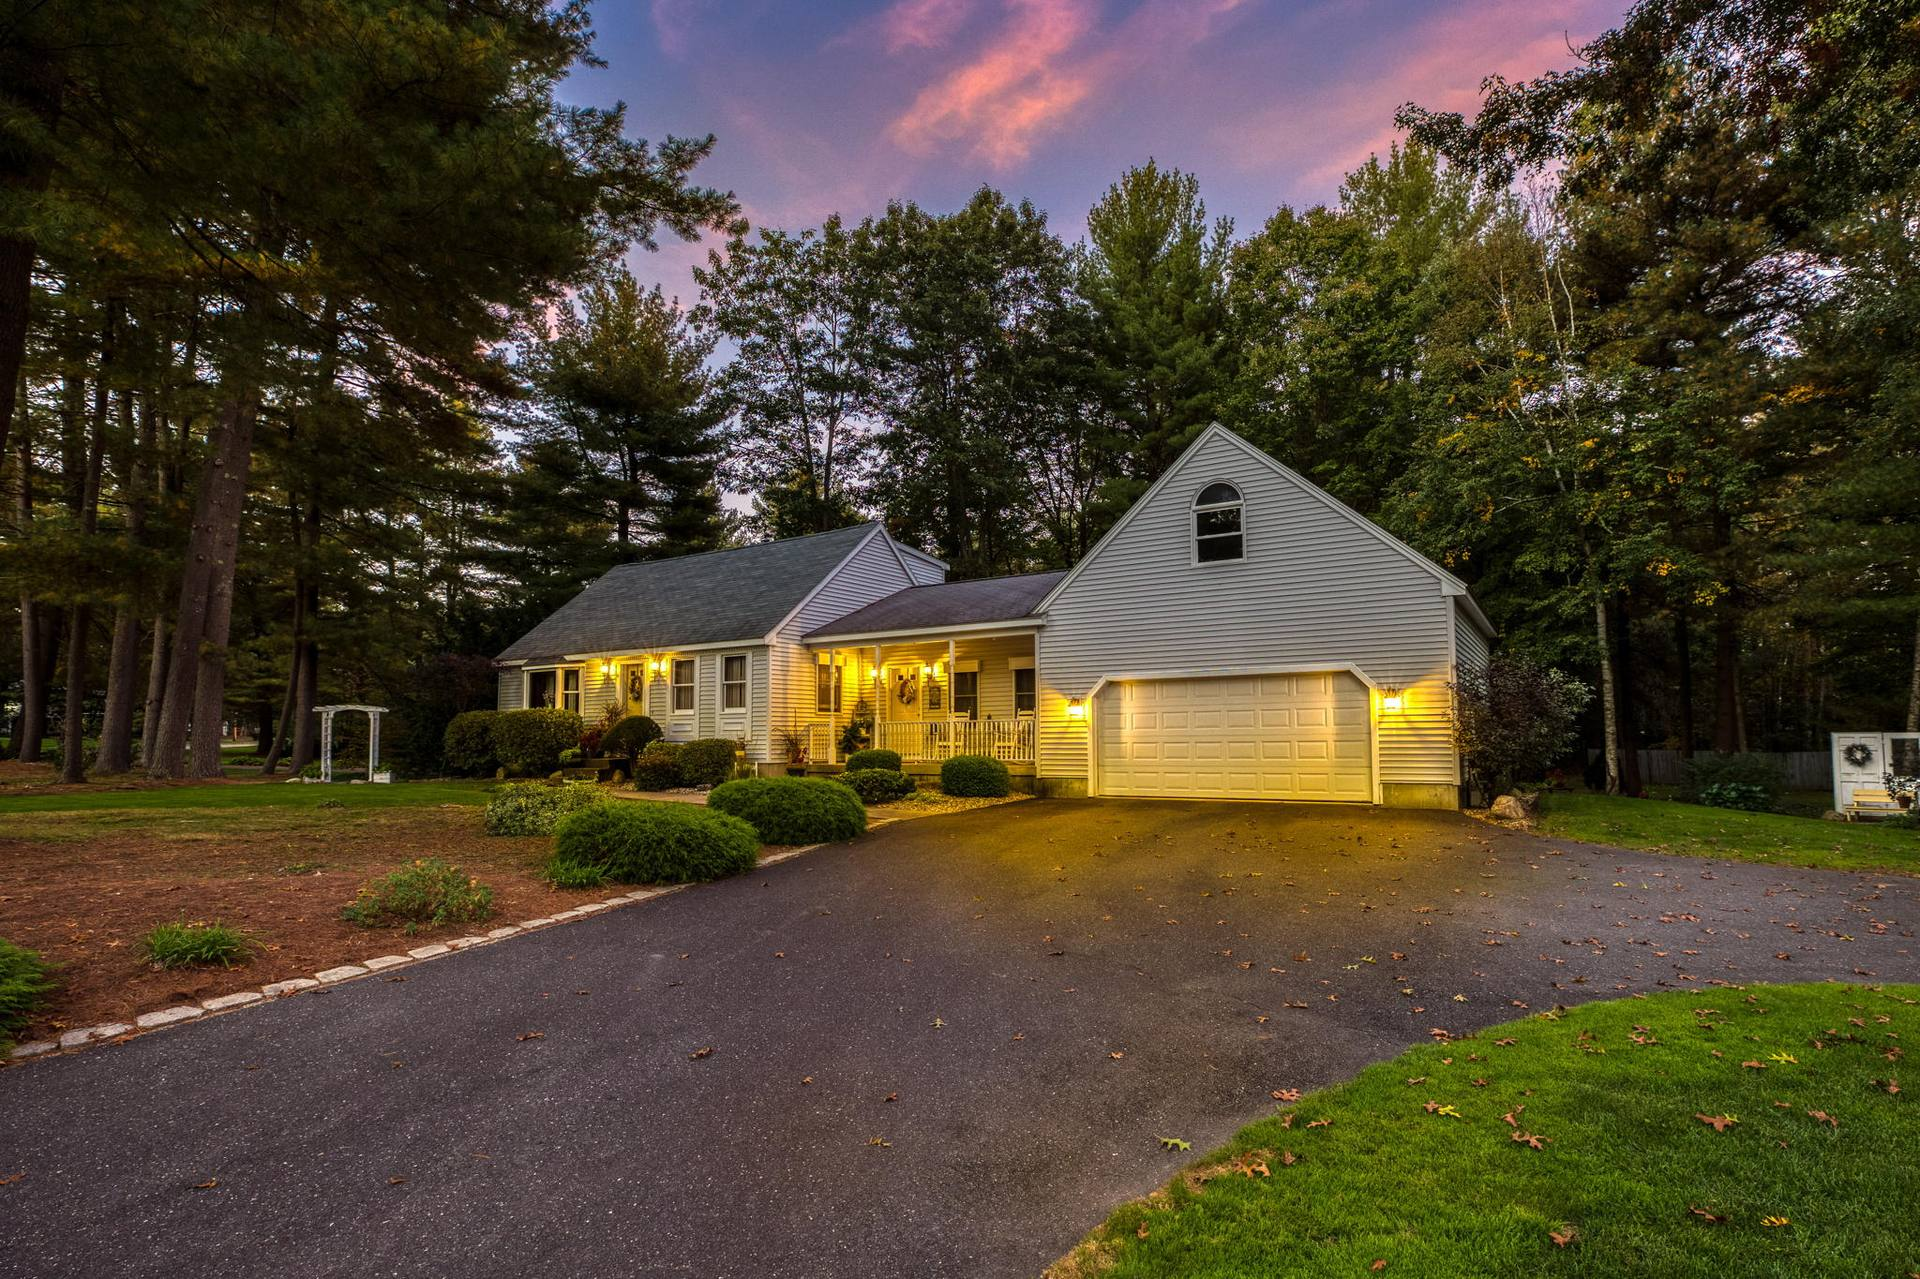 21 Woodsong Rd, Westfield, MA 01085, USA